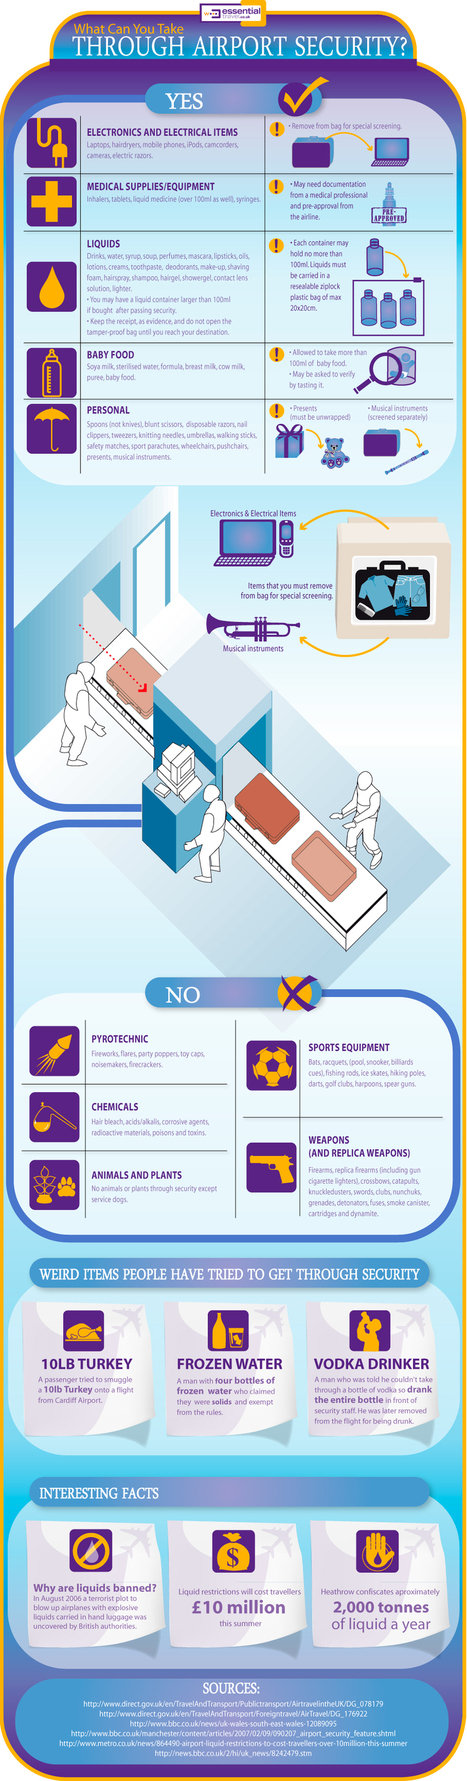 What Can You Take Through Airport Security? | Interesting Reading | Scoop.it